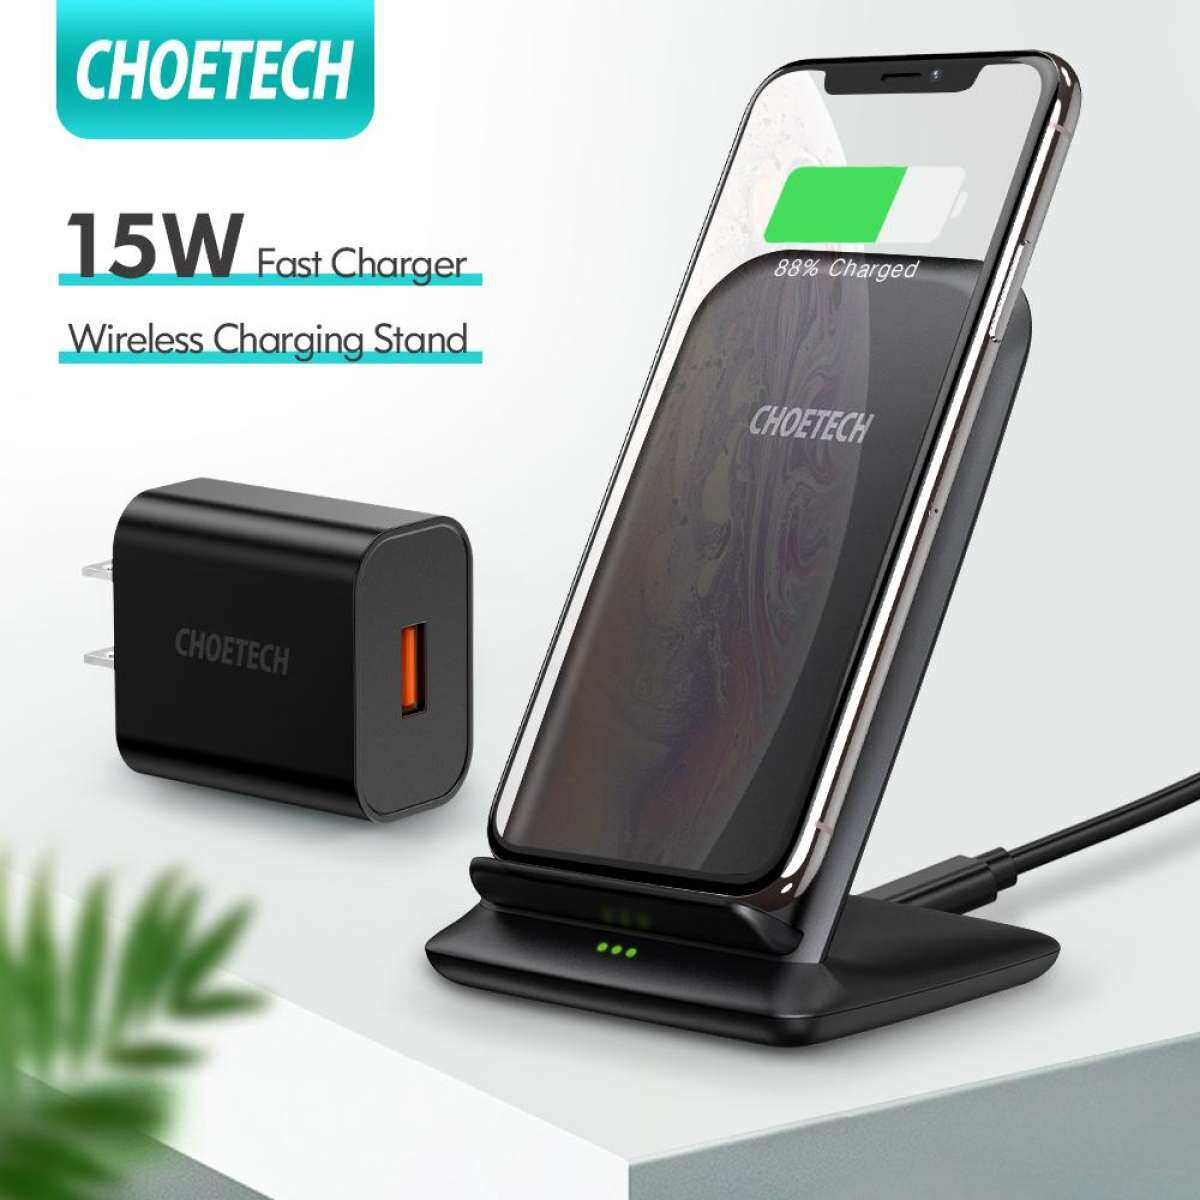 CHOETECH 15W Wireless Charger, Fast Wireless Charging Stand with QC 3.0 Adapter